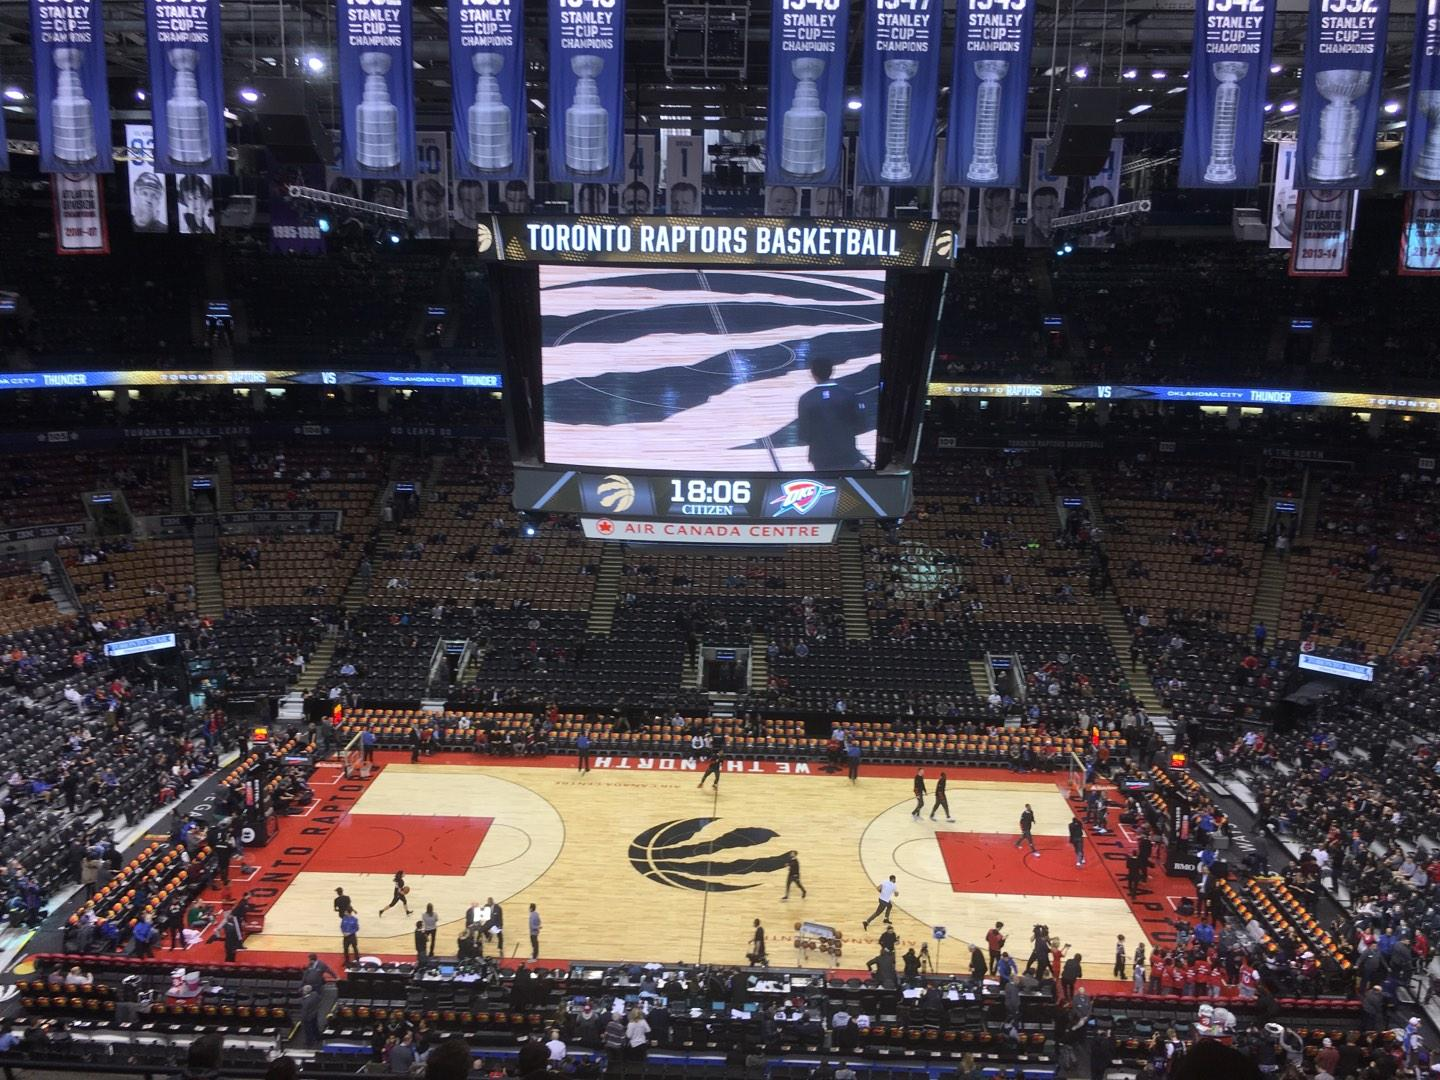 Scotiabank Arena Section 321 Row 9 Seat 10